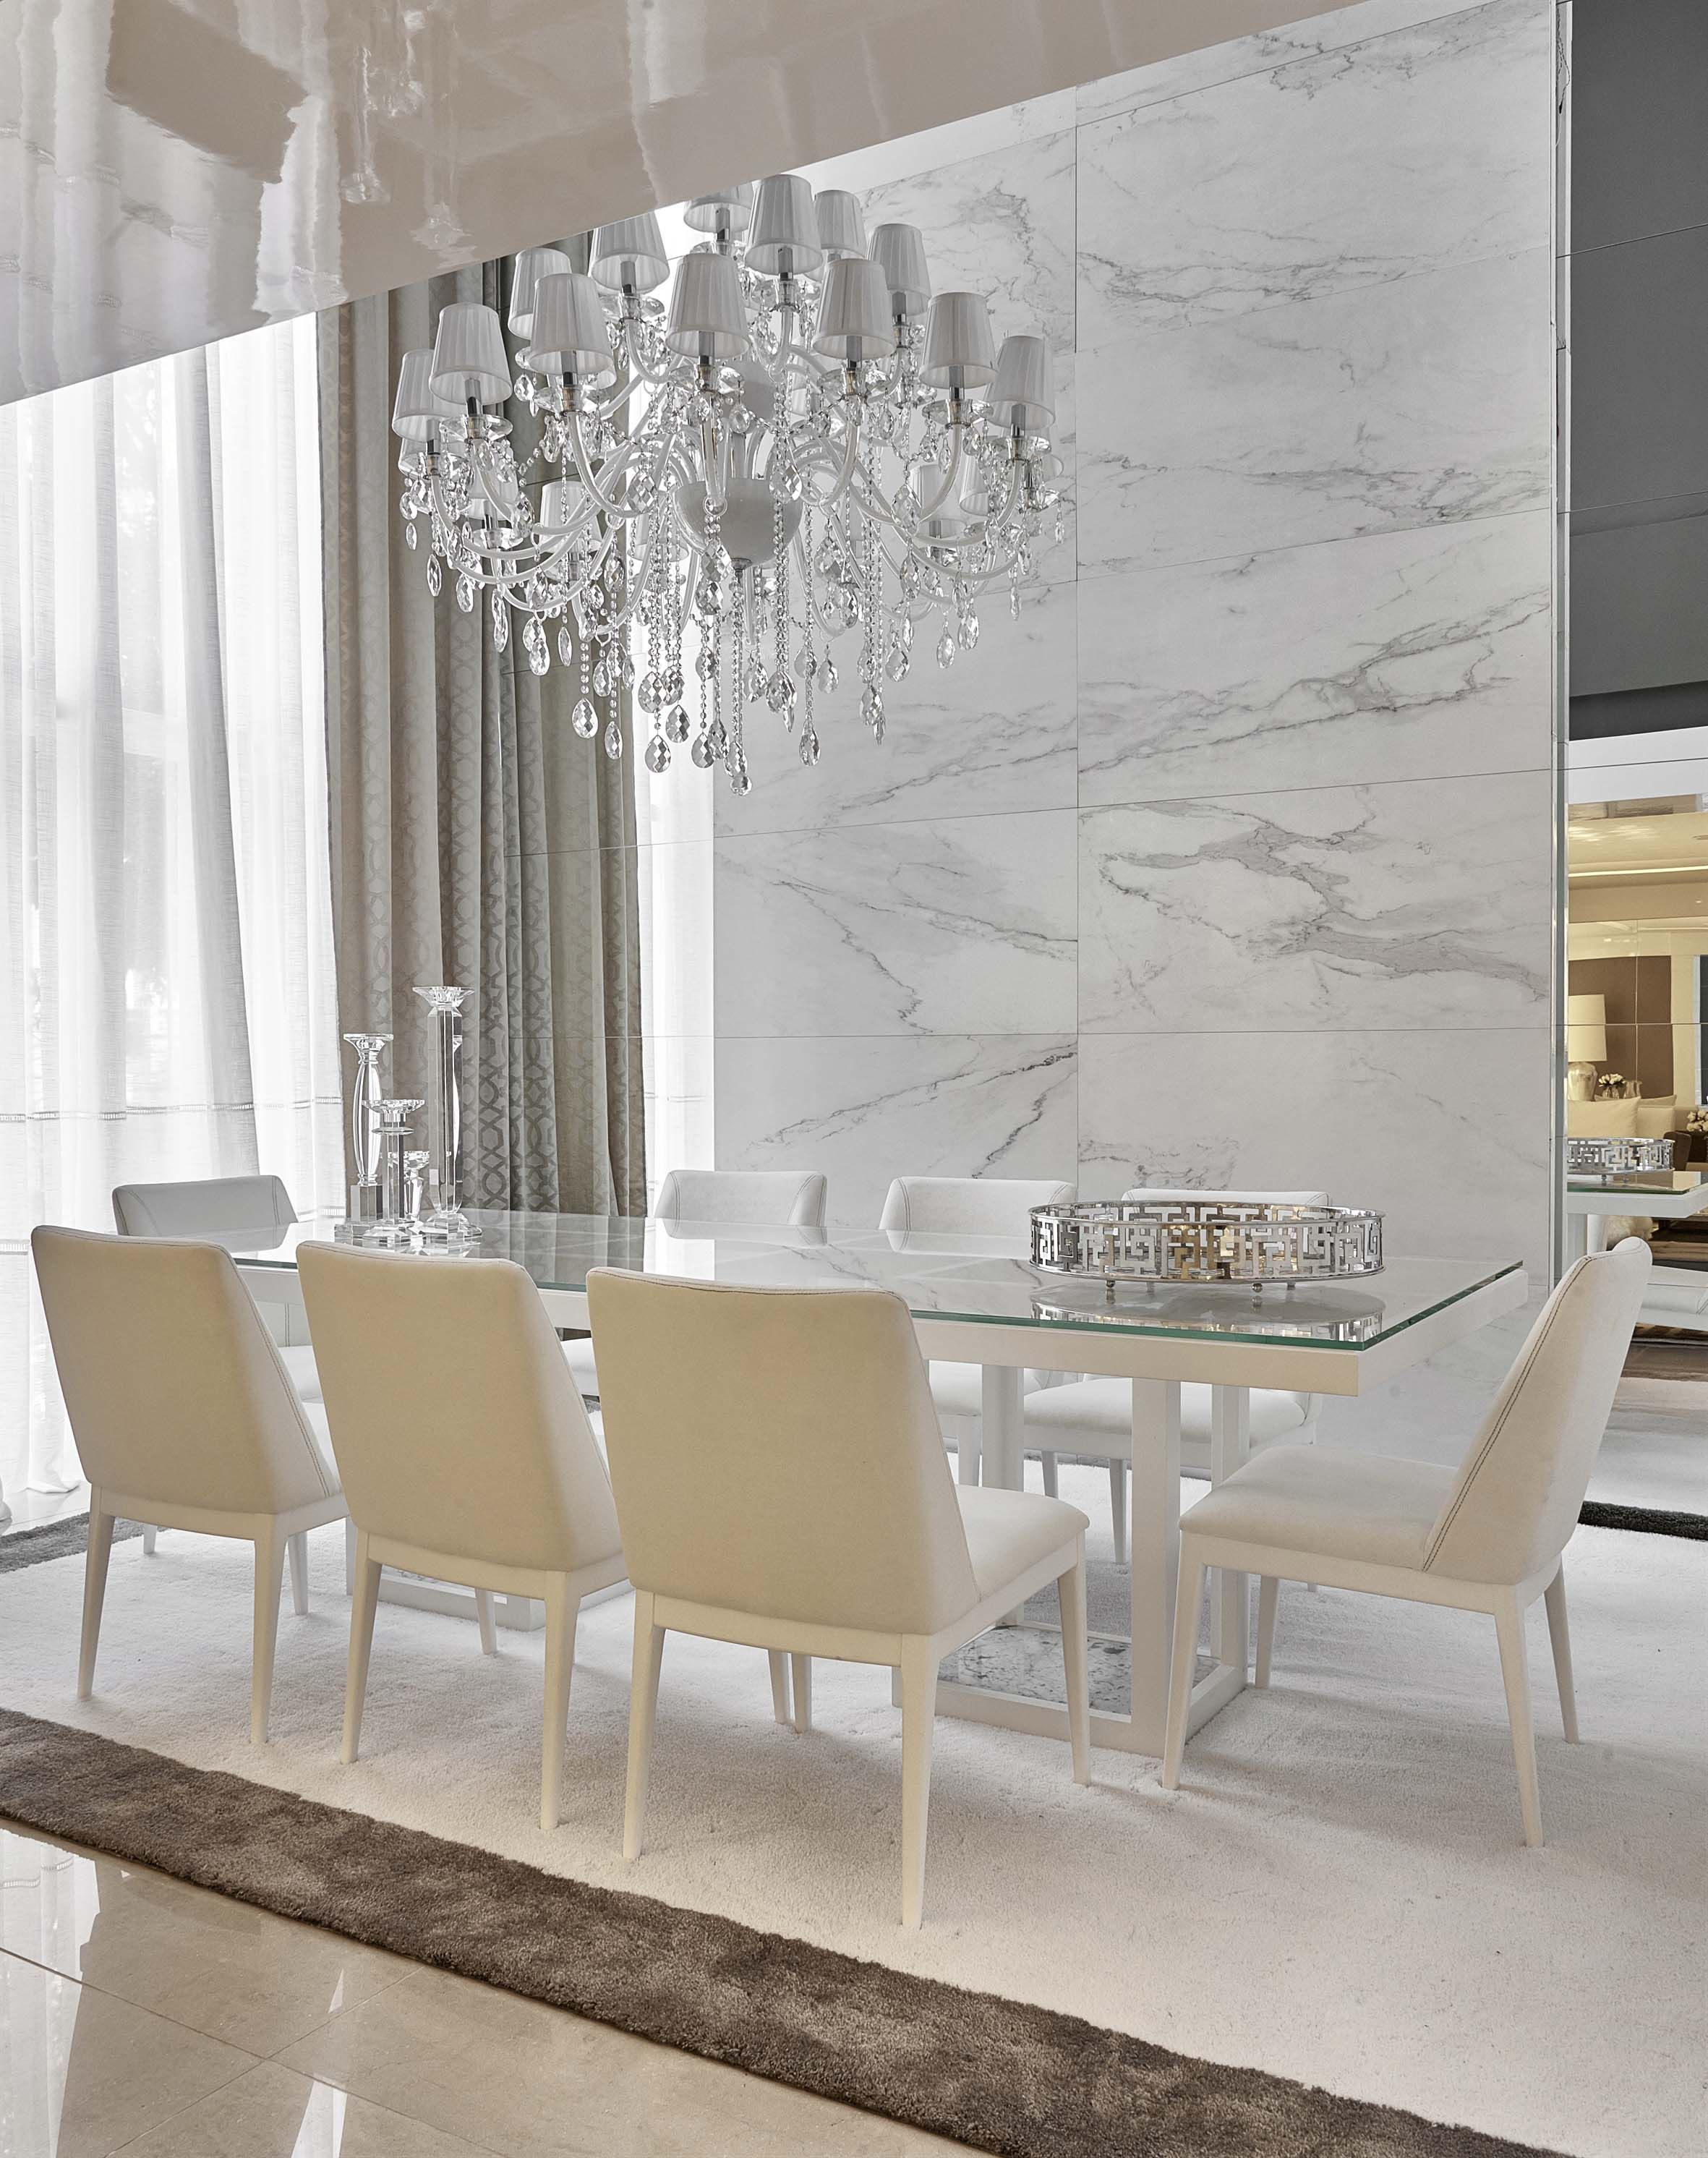 Luxury Dining Room Furniture: Marble Walls And Statement Chandelier